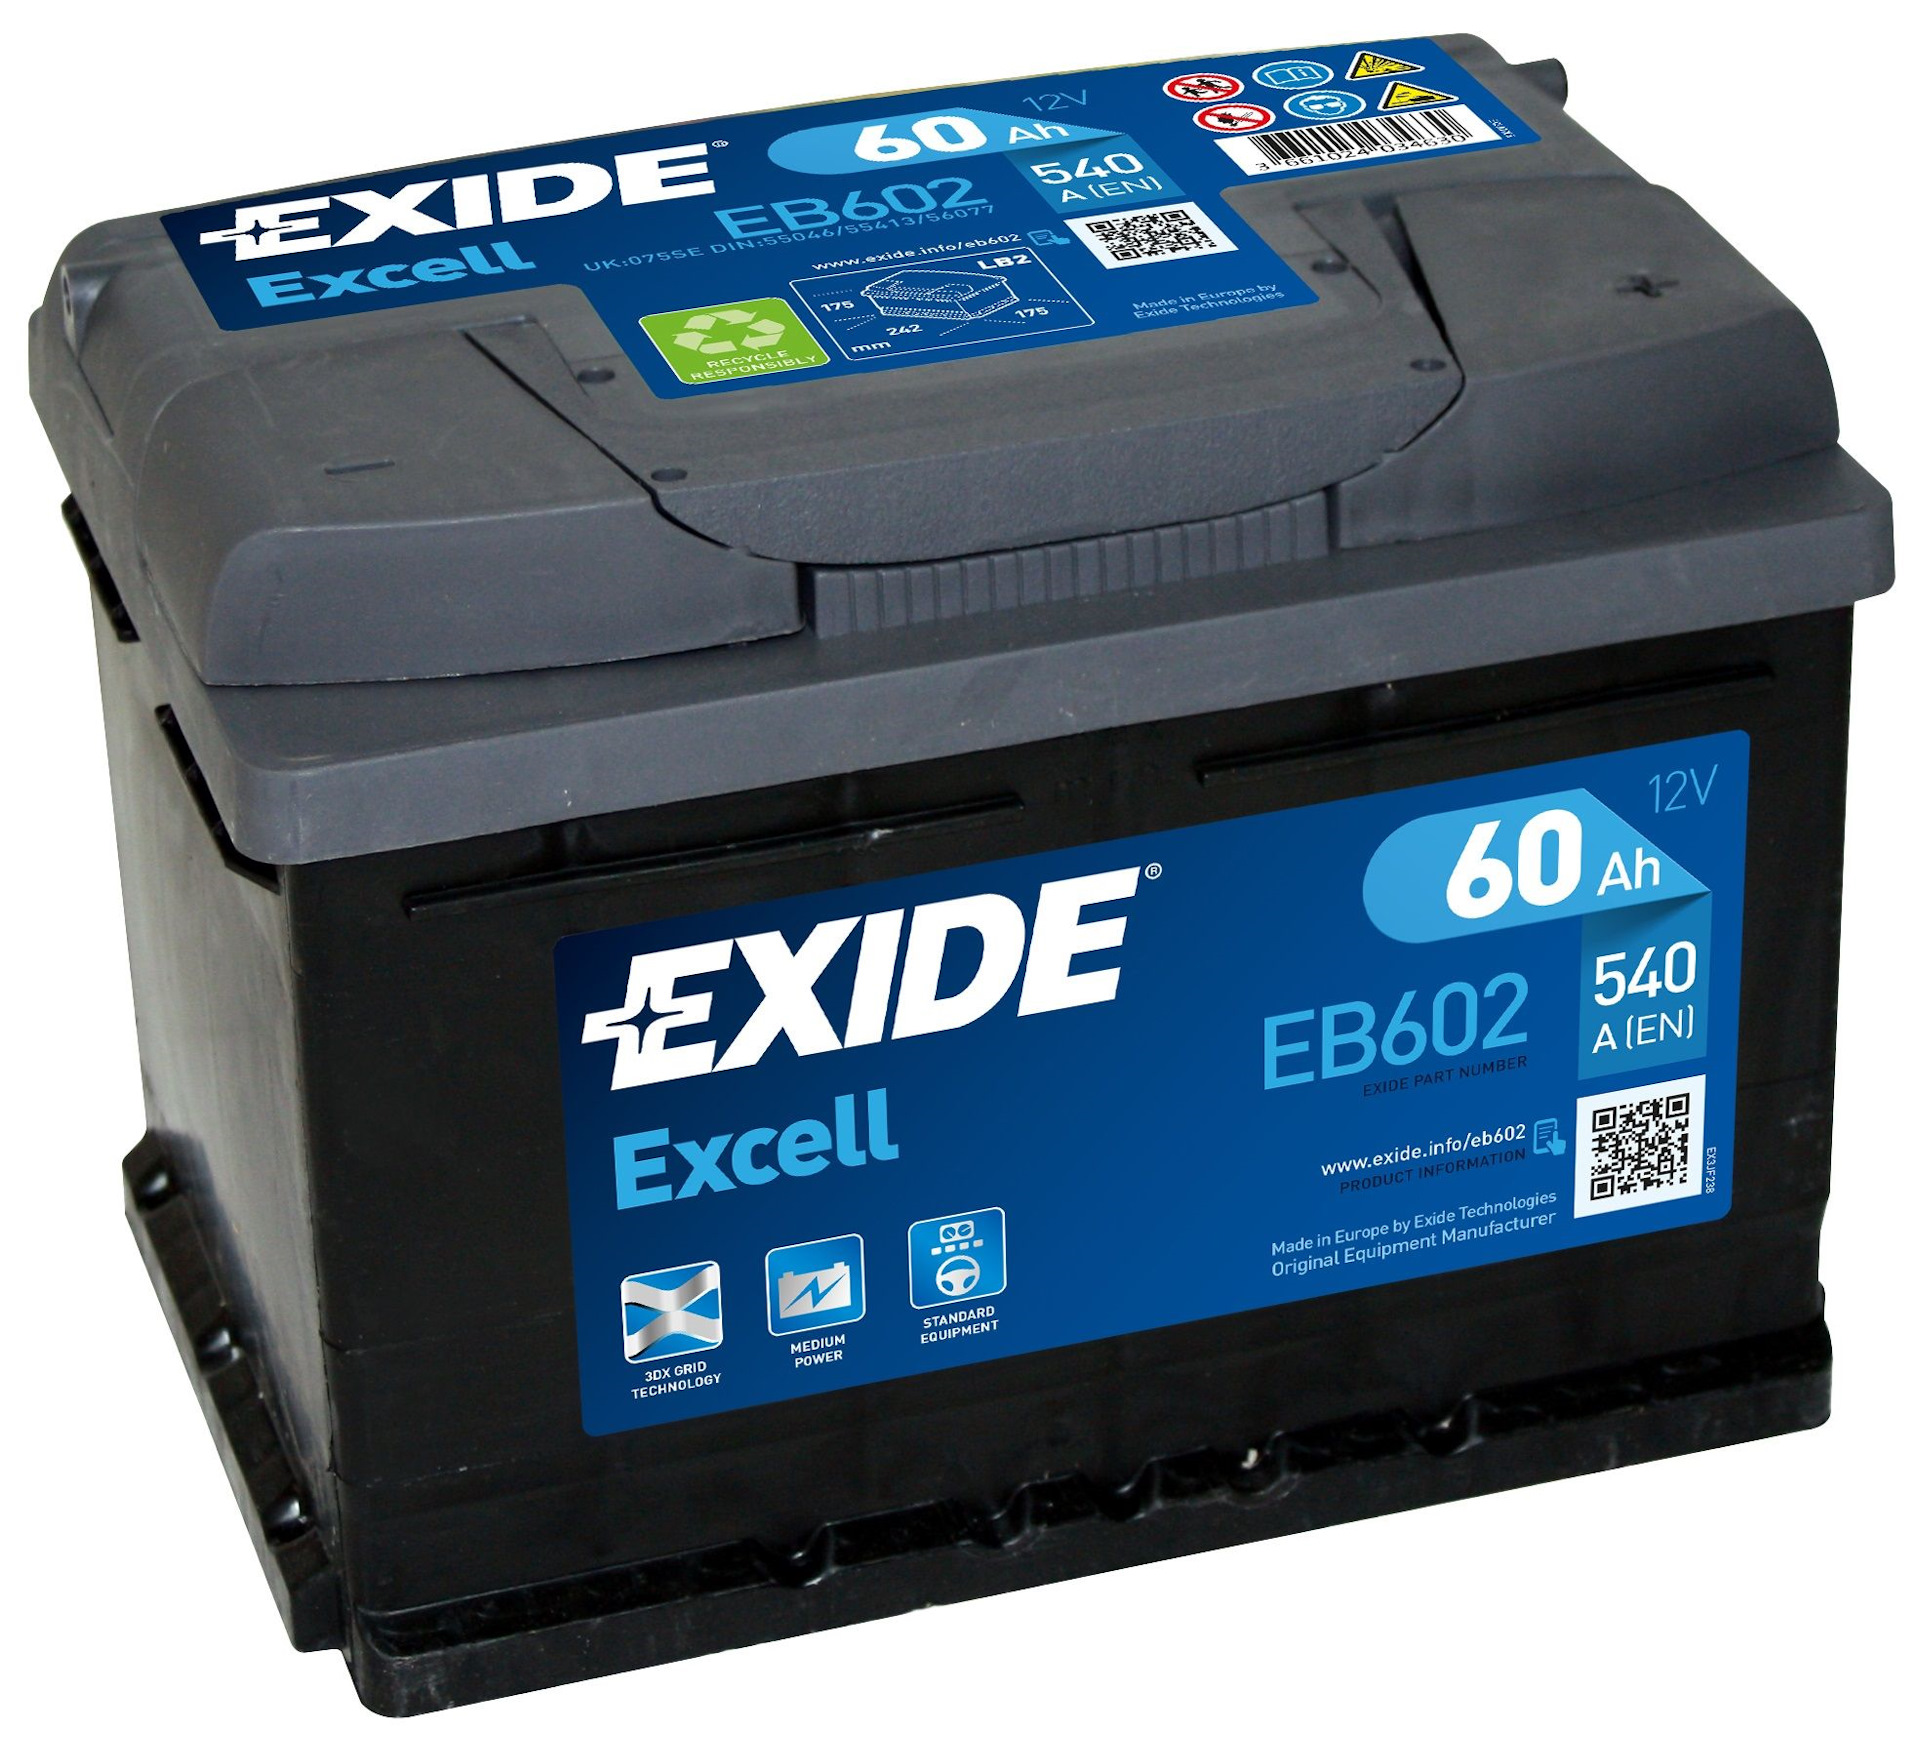 Exide Excell EB602